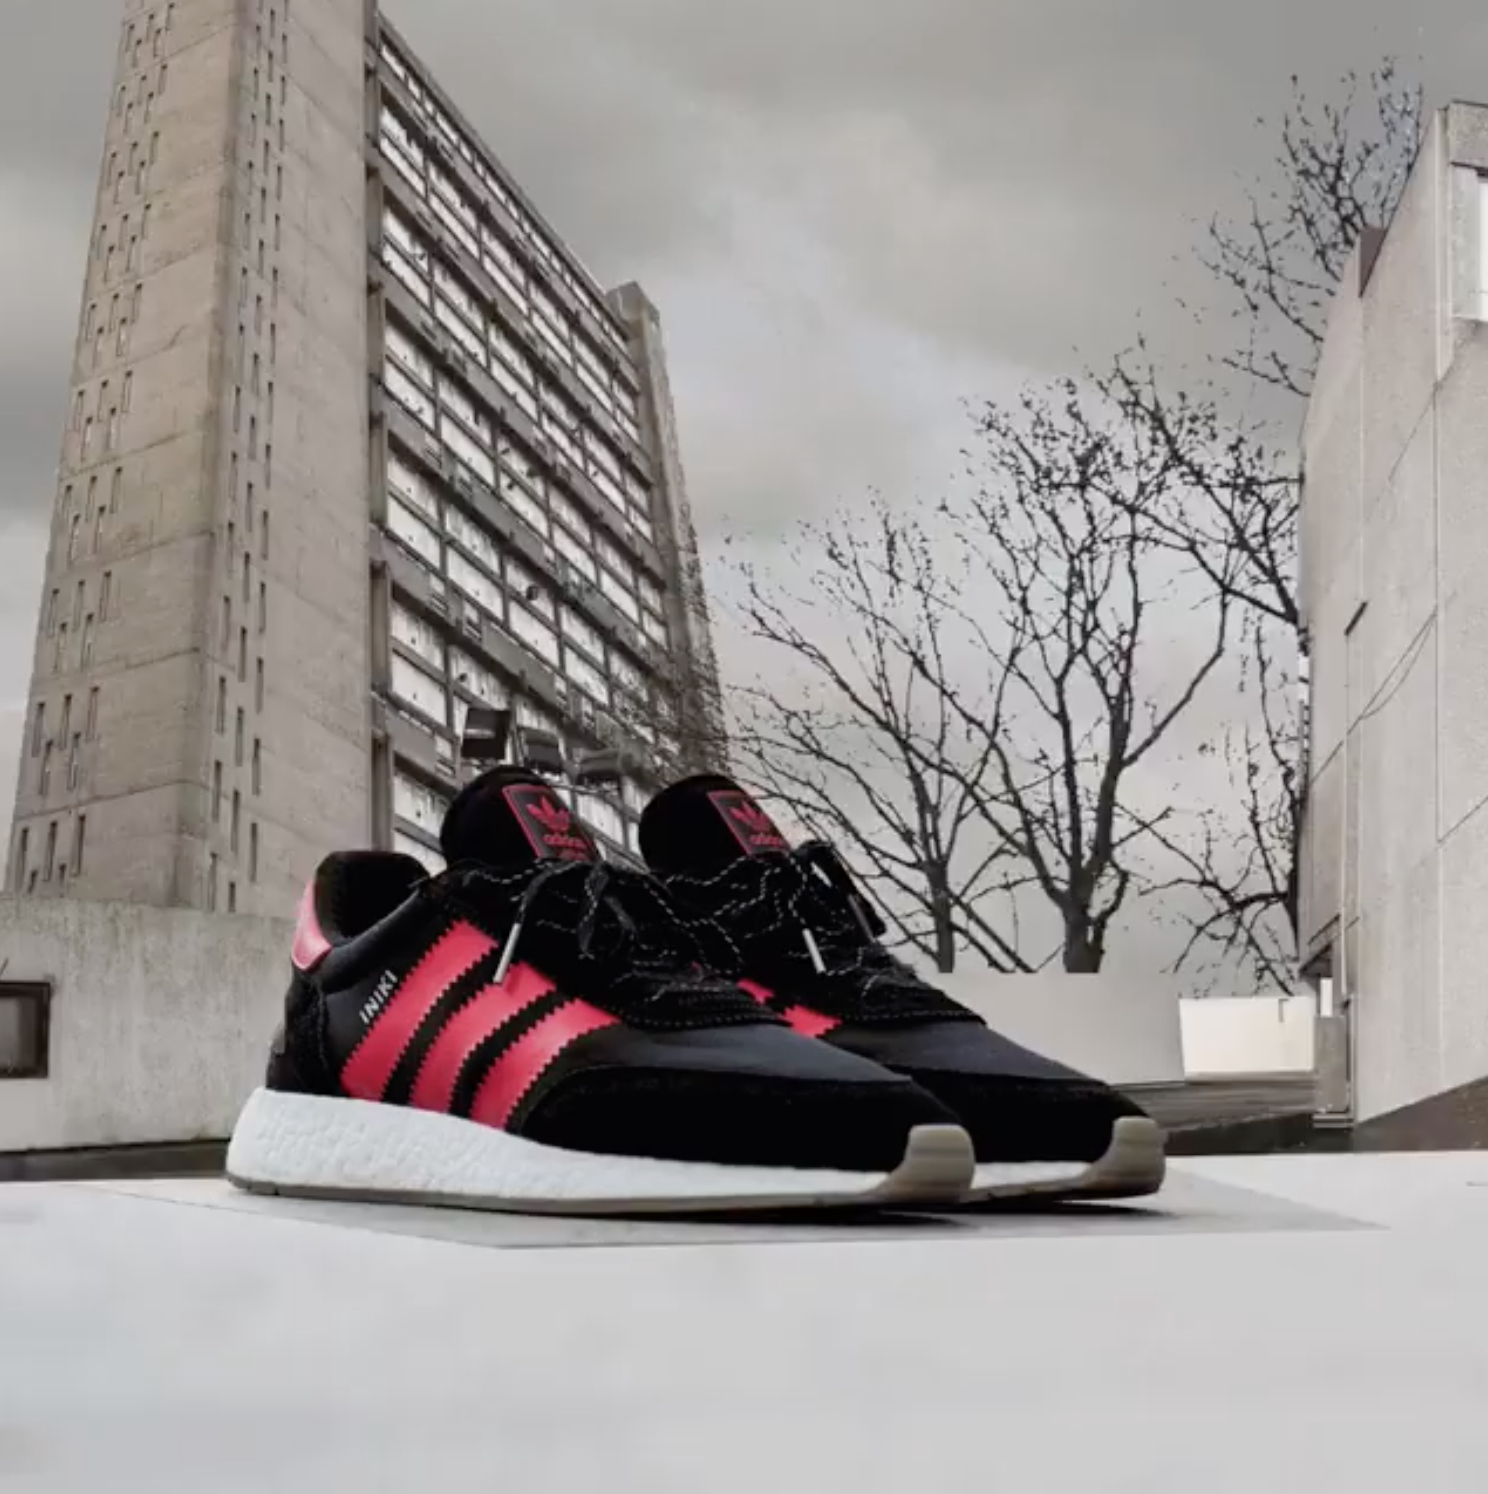 brand new 006f8 13d62 adidas iniki runner boost black red flagship exclusive 1